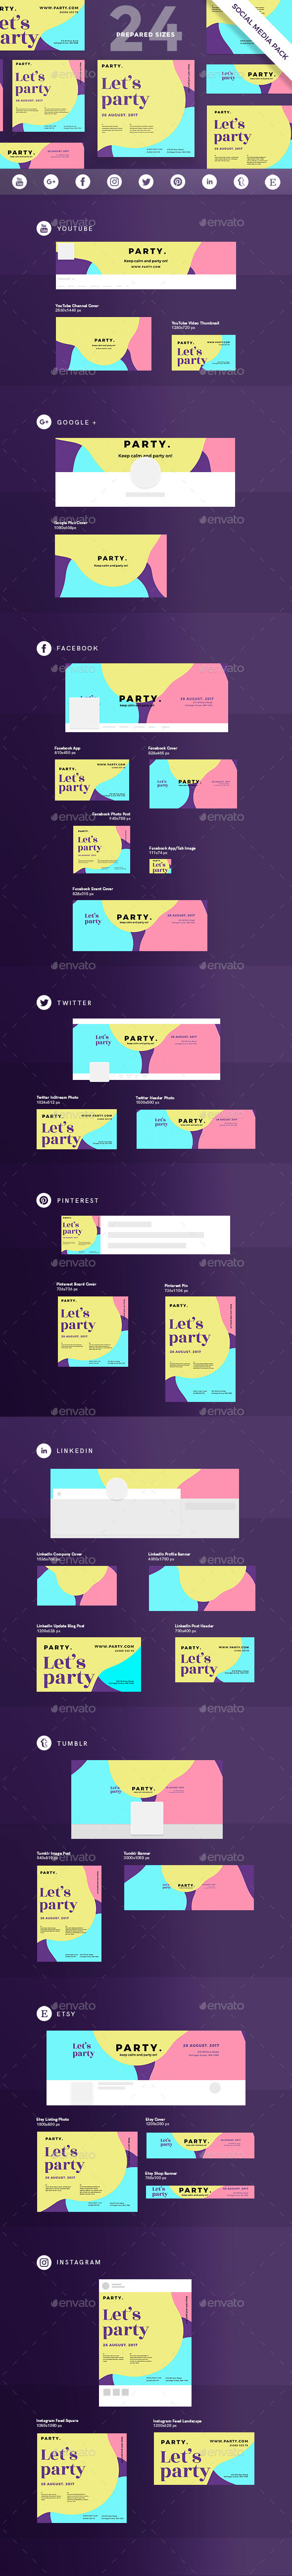 Color Party Social Media Pack - Miscellaneous Social Media